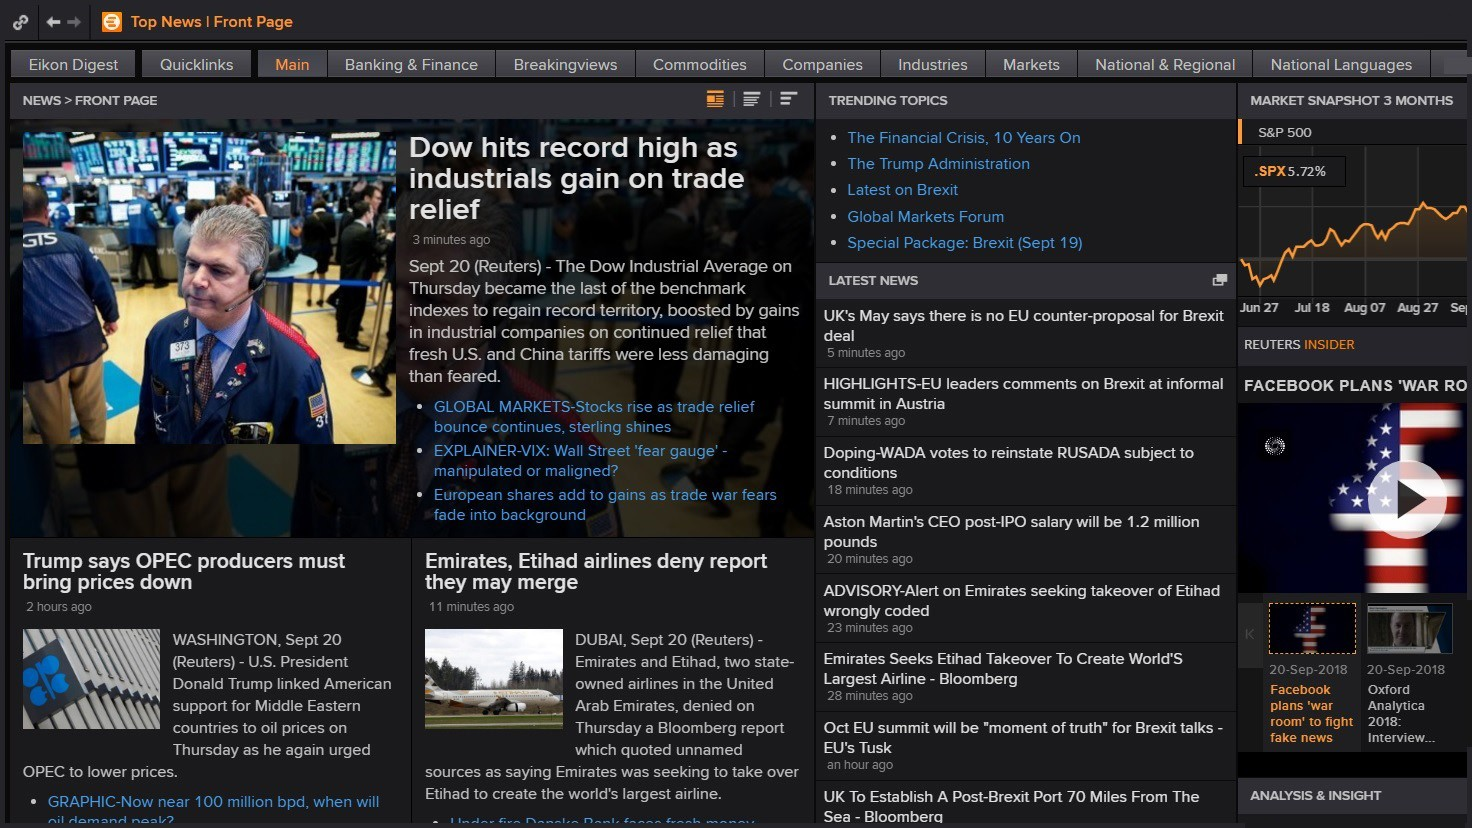 Screenshot showing the Eikon news front page